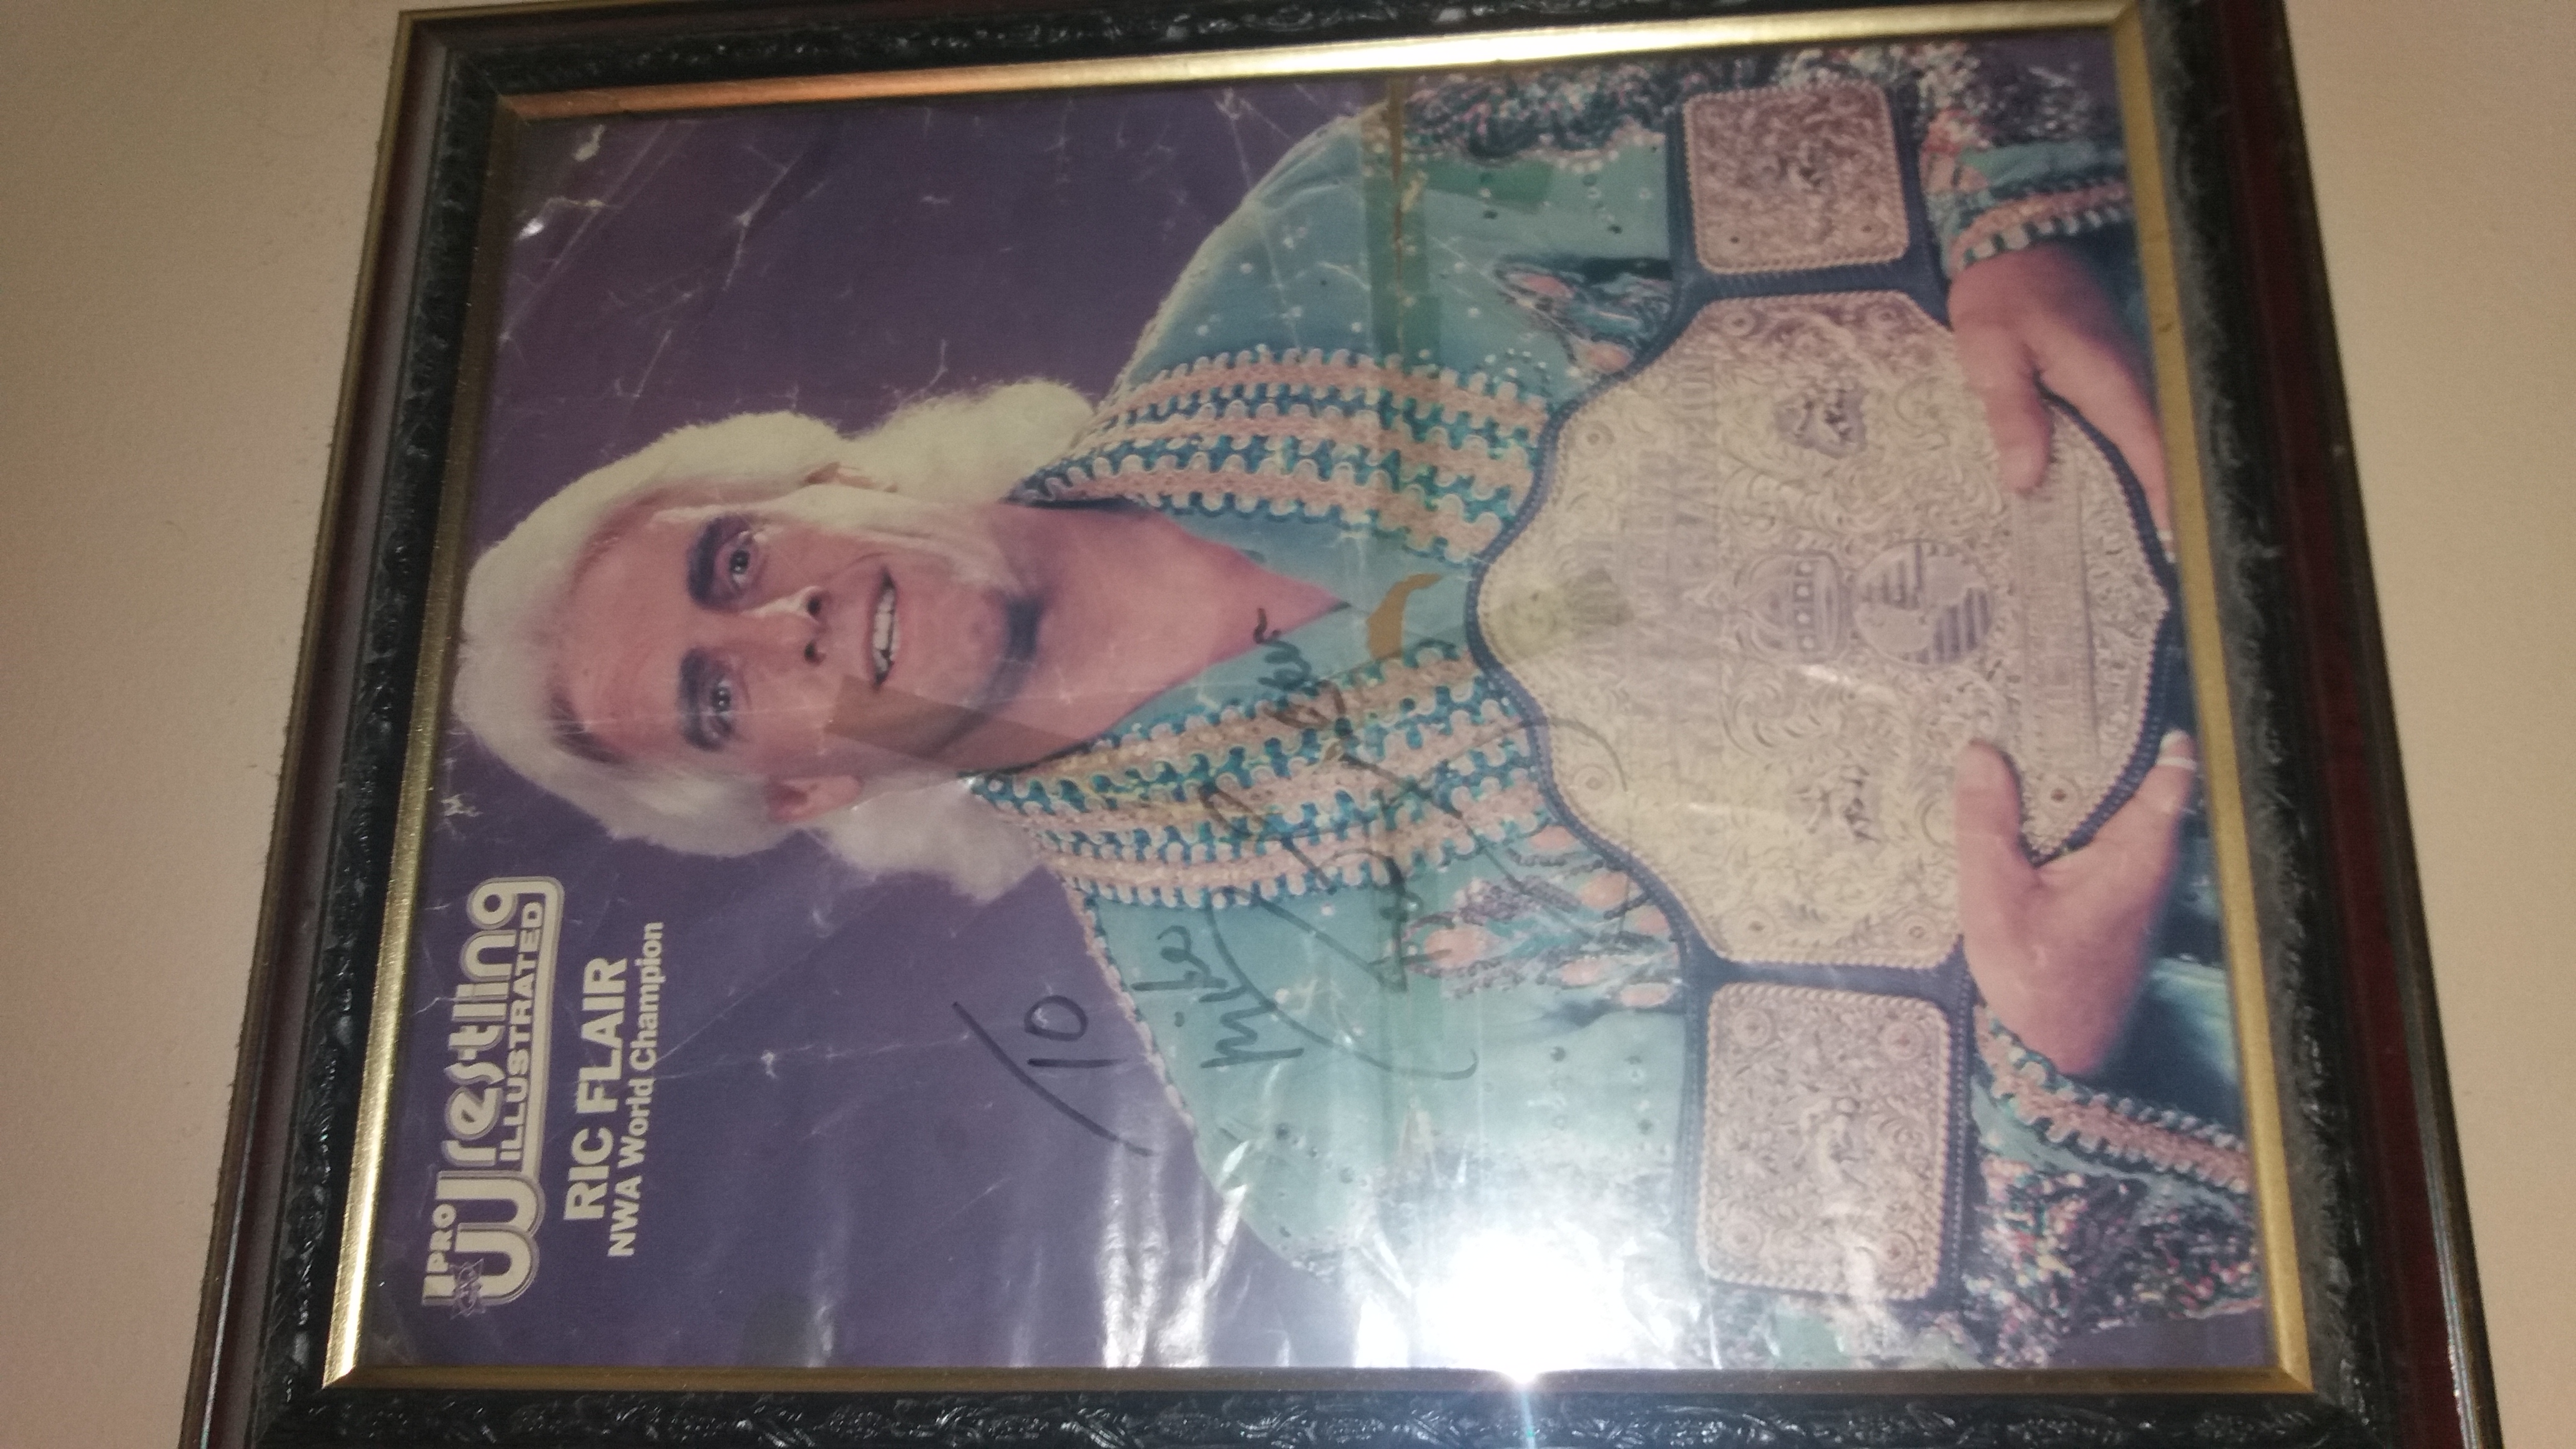 Ric Flair PWI Poster